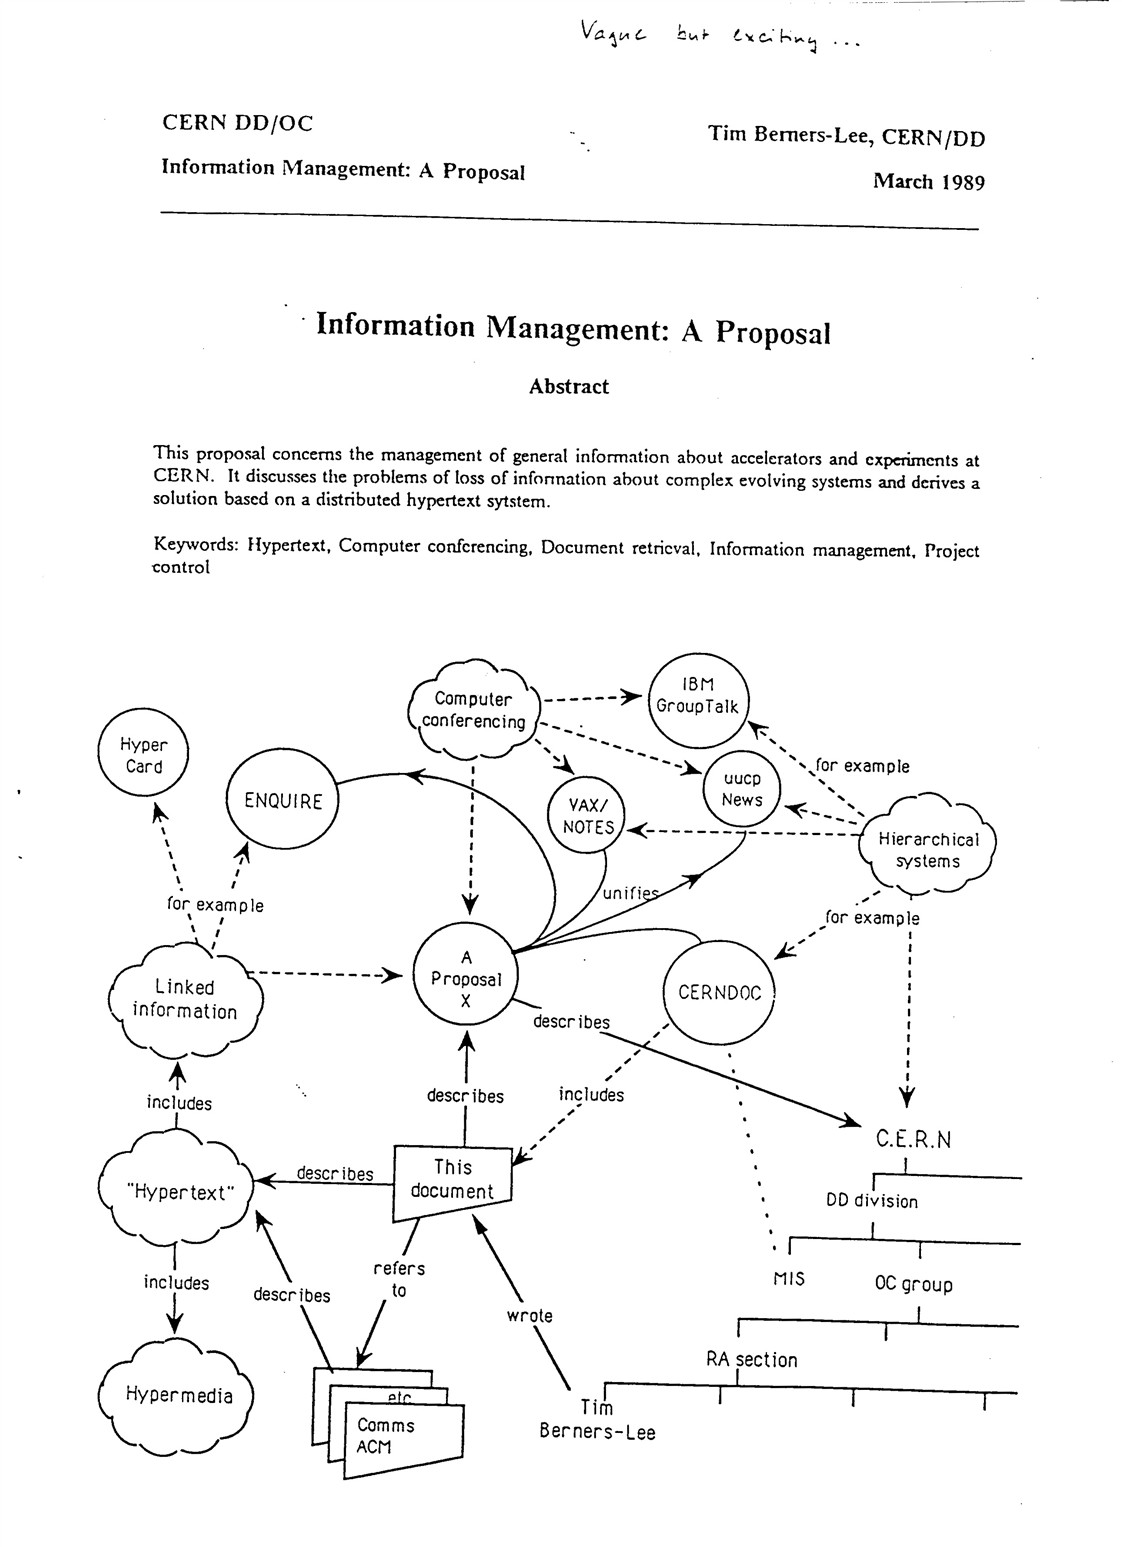 Information Management: A Proposal, 1989.